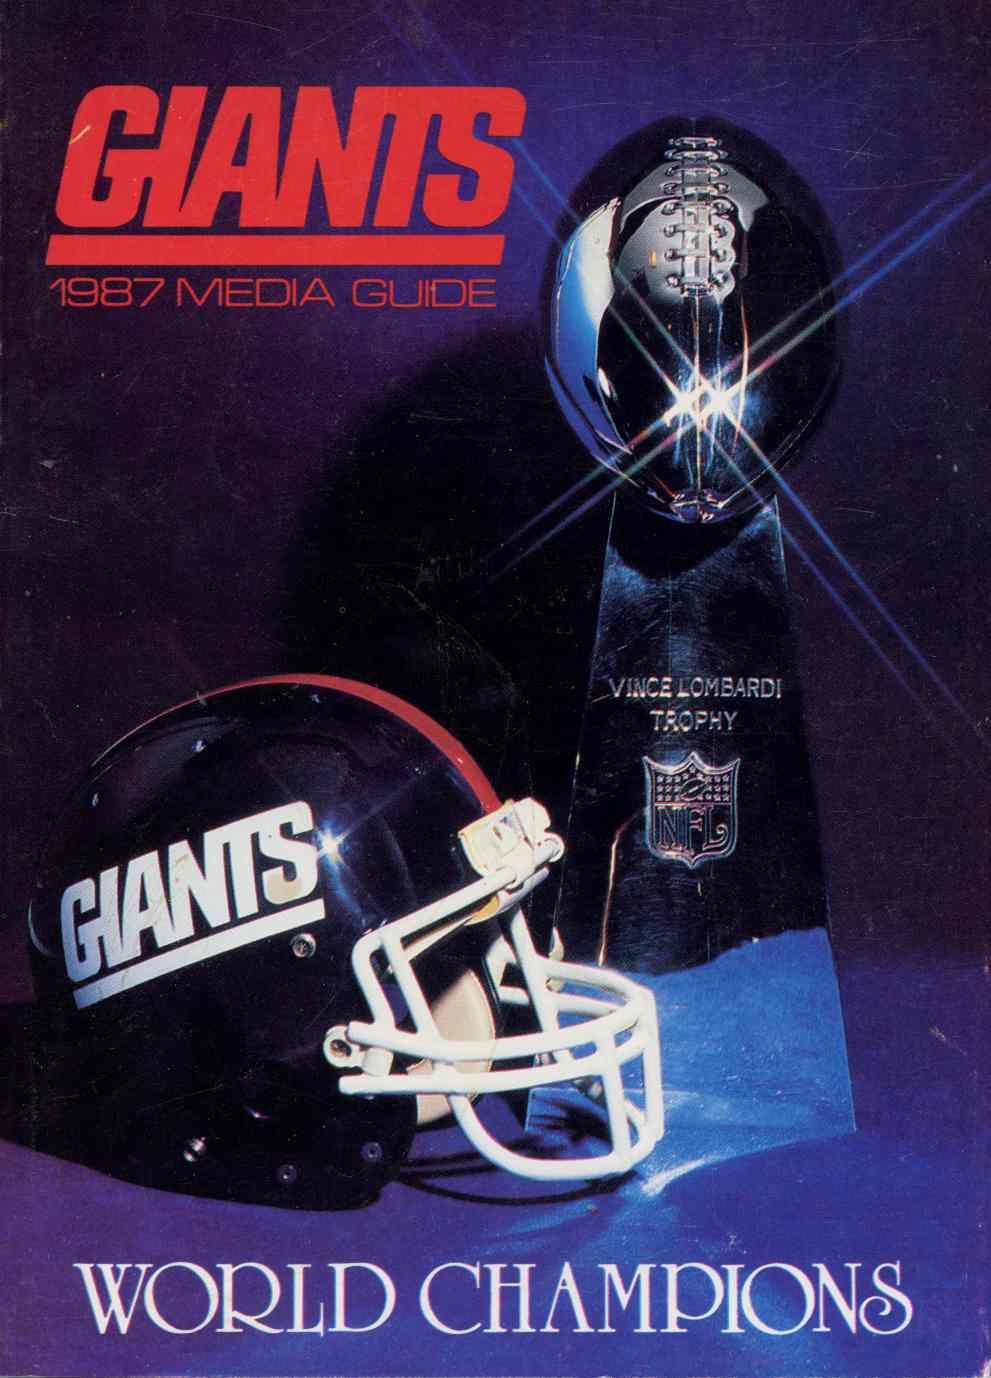 New York Giants 1987 Media Guide